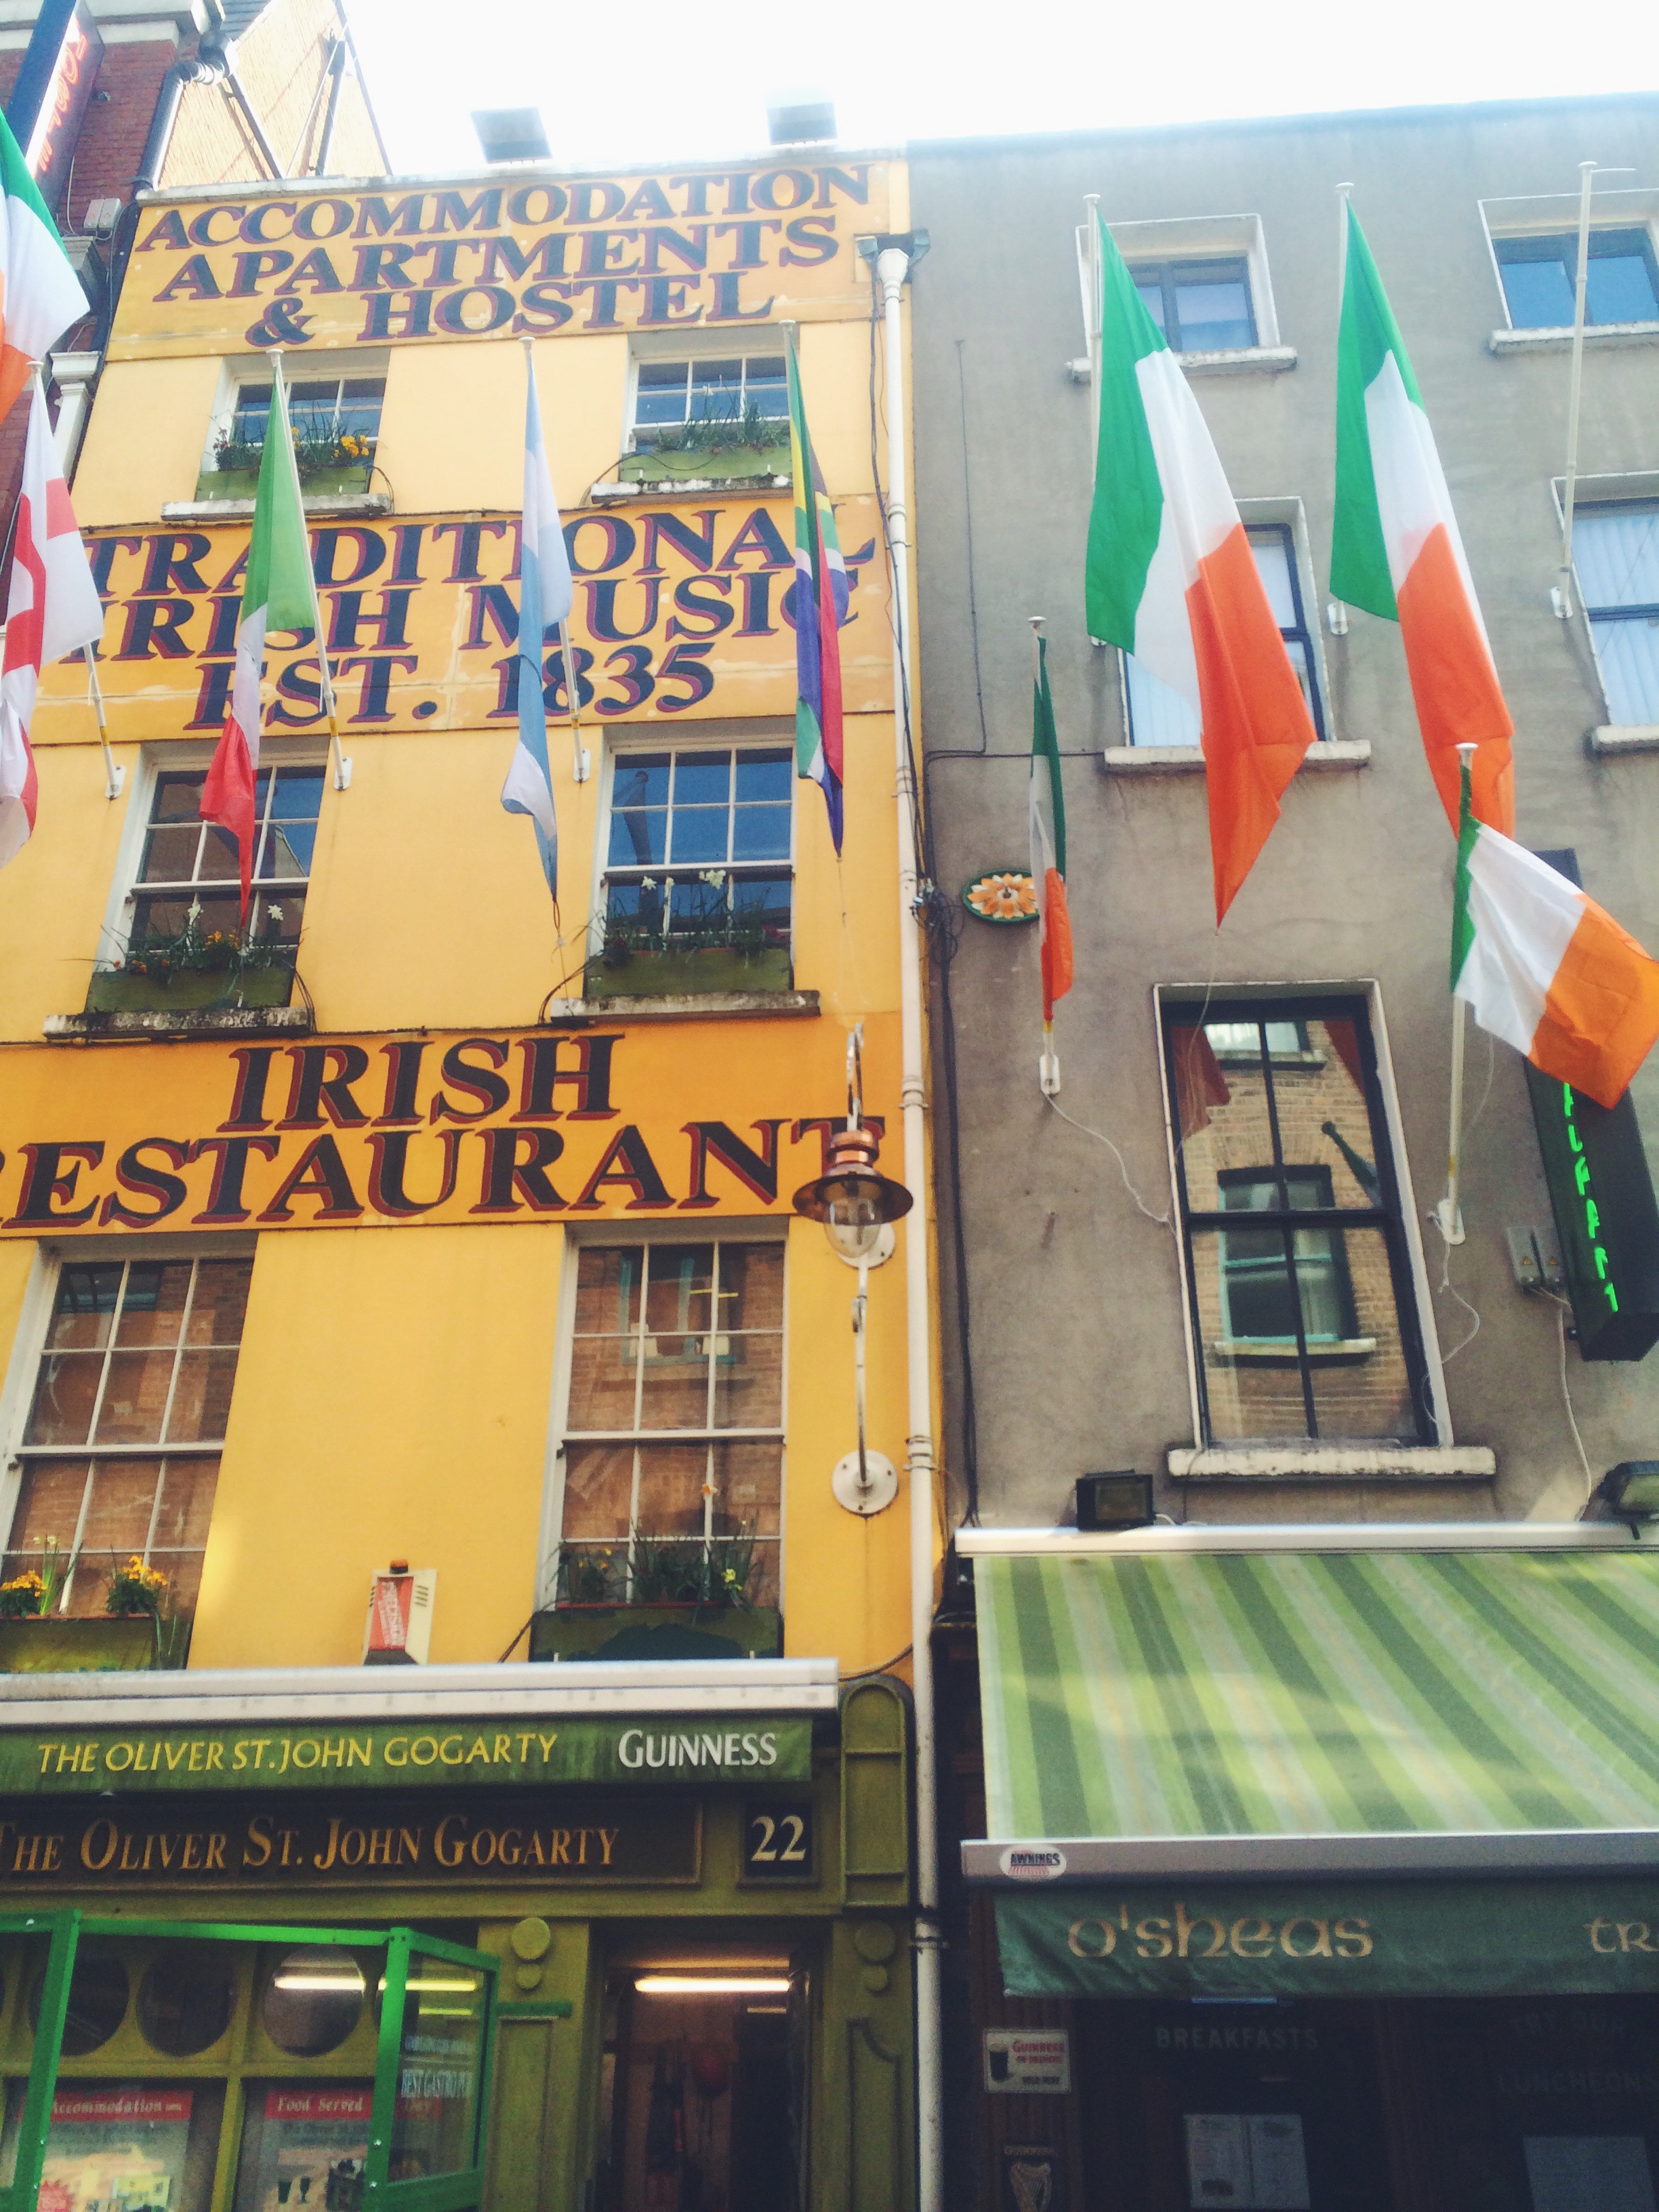 Irish Restaurant